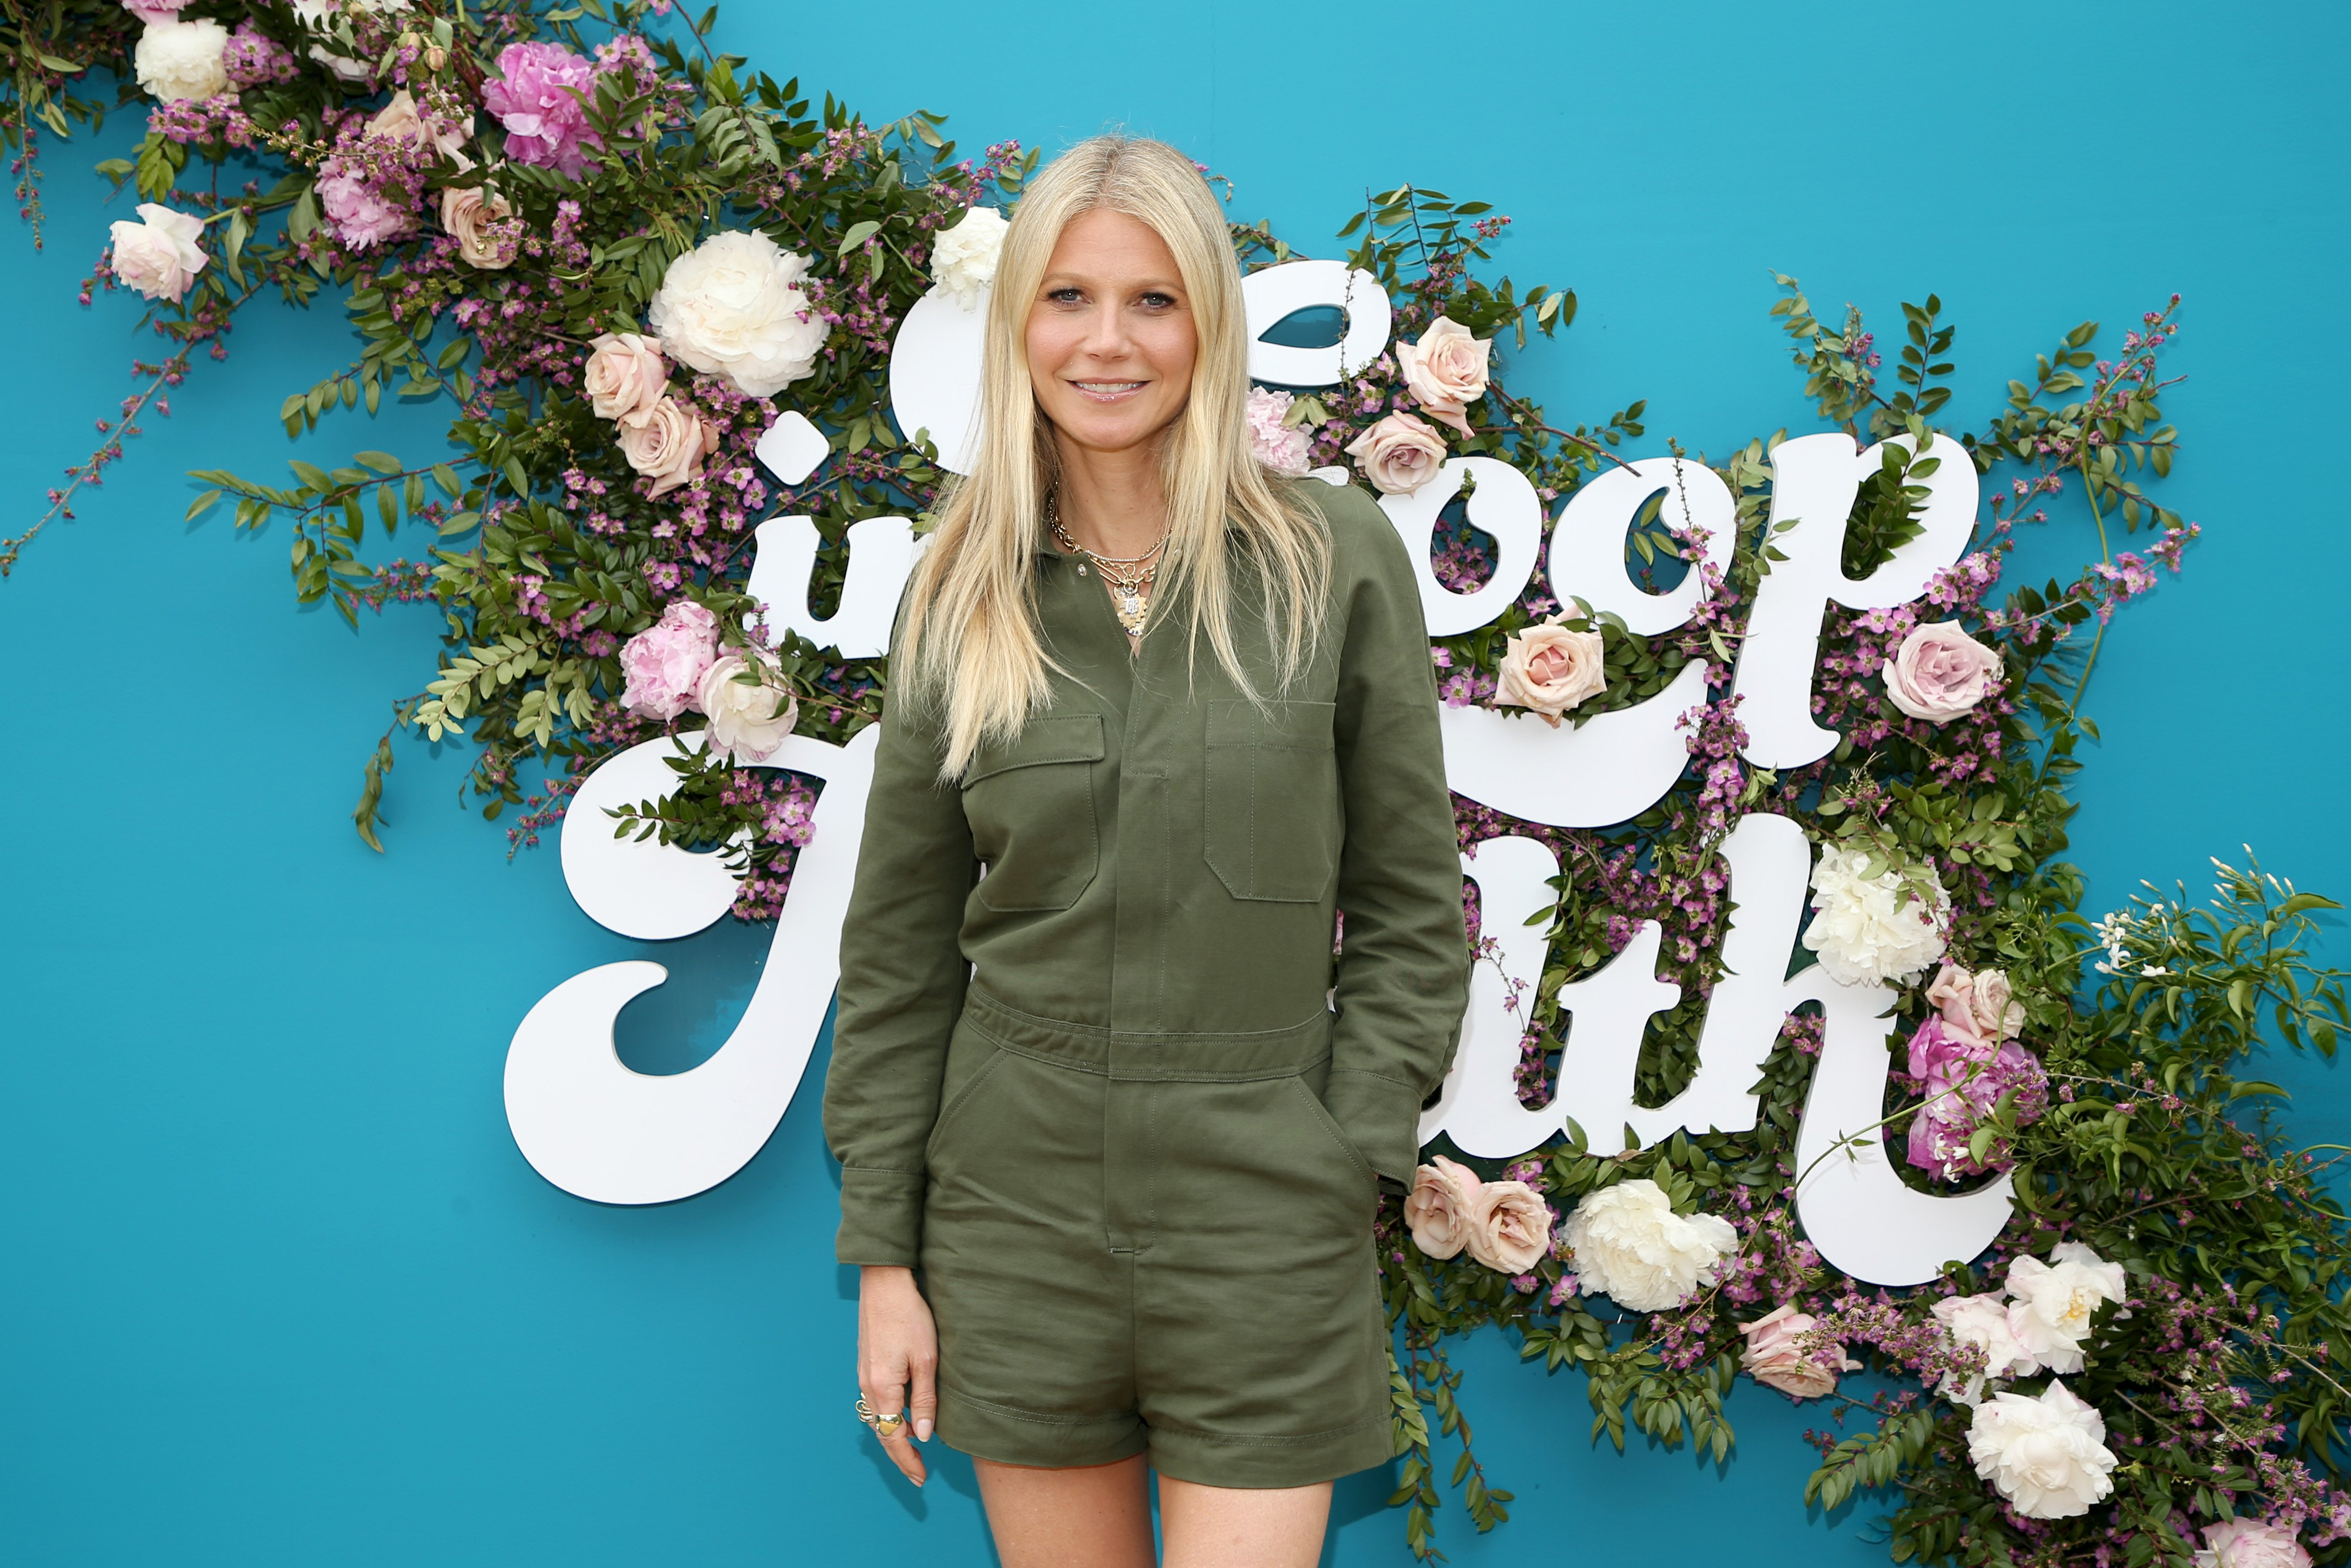 Image Credits: Getty Images / Phillip Faraone | Goop CEO Gwyneth Paltrow attends In goop Health Summit Los Angeles 2019 at Rolling Greens Nursery on May 18, 2019 in Los Angeles, California.